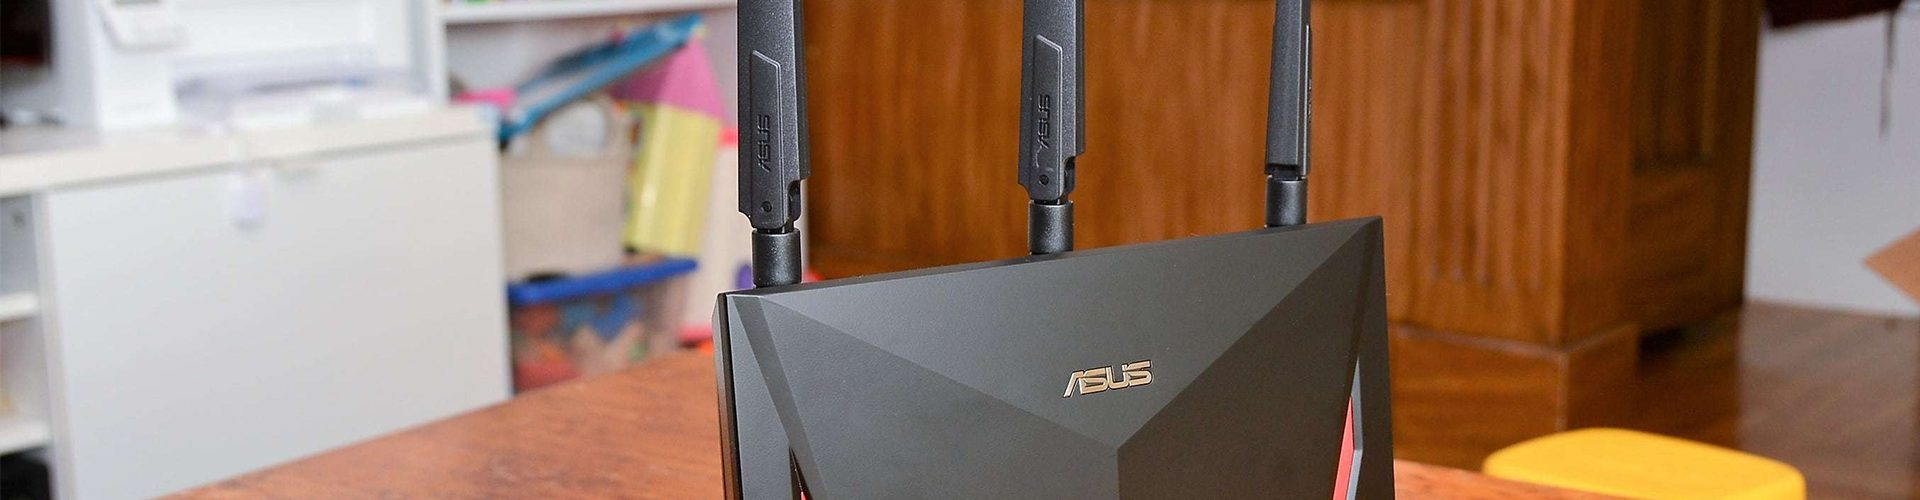 How To Update Asus Rt Ac5300 Firmware Http Routerasuscom Tri Band Gigabit Router Wireless Ac 5300 Mbps